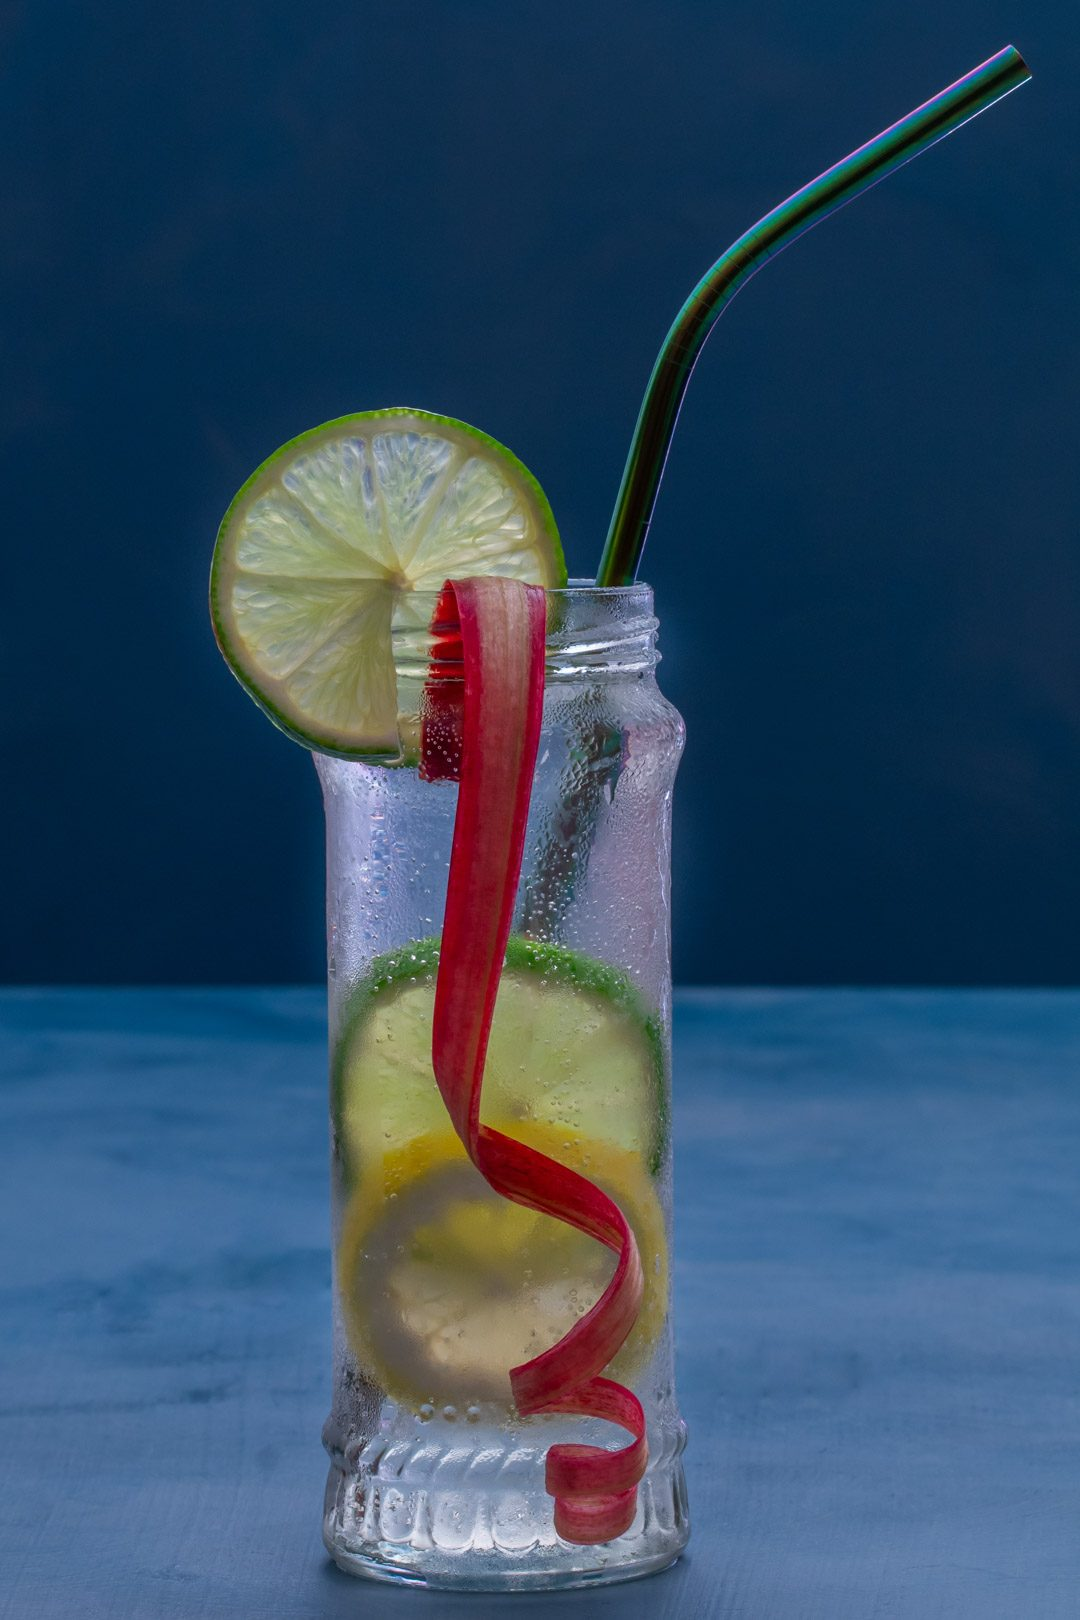 lemon, lime and rhubarb bitters with straw right